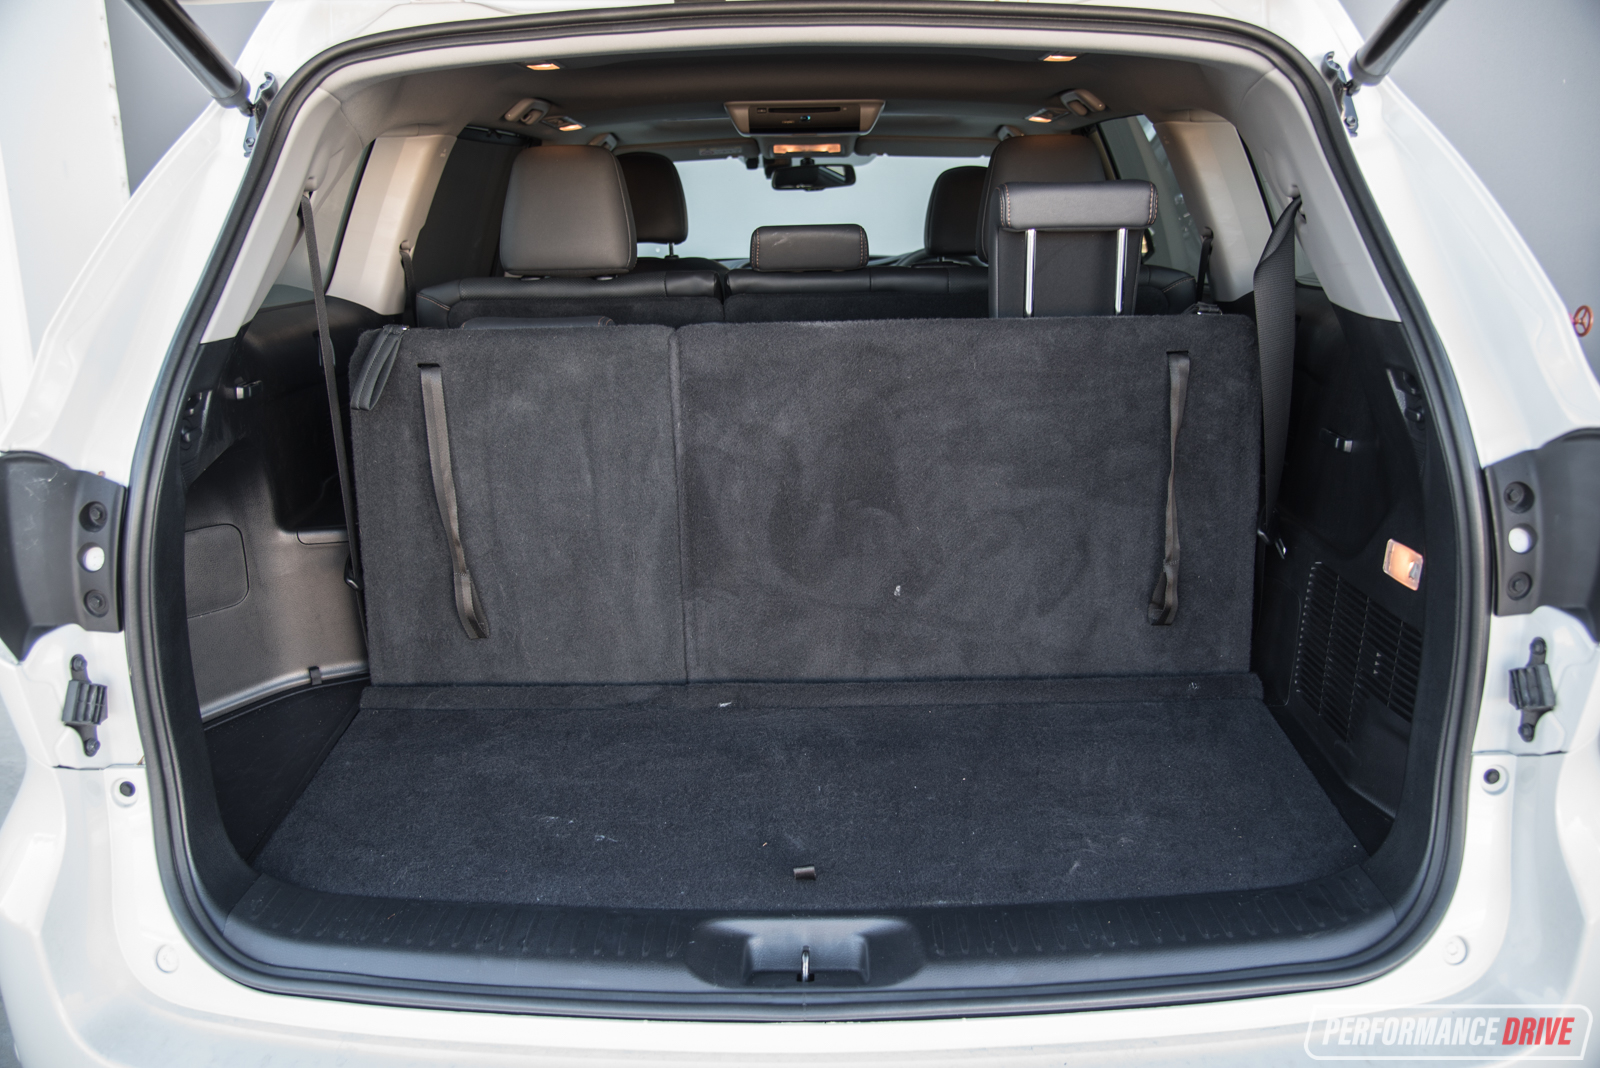 Toyota Highlander Cargo Space >> Should you buy a Toyota Kluger? | PerformanceDrive